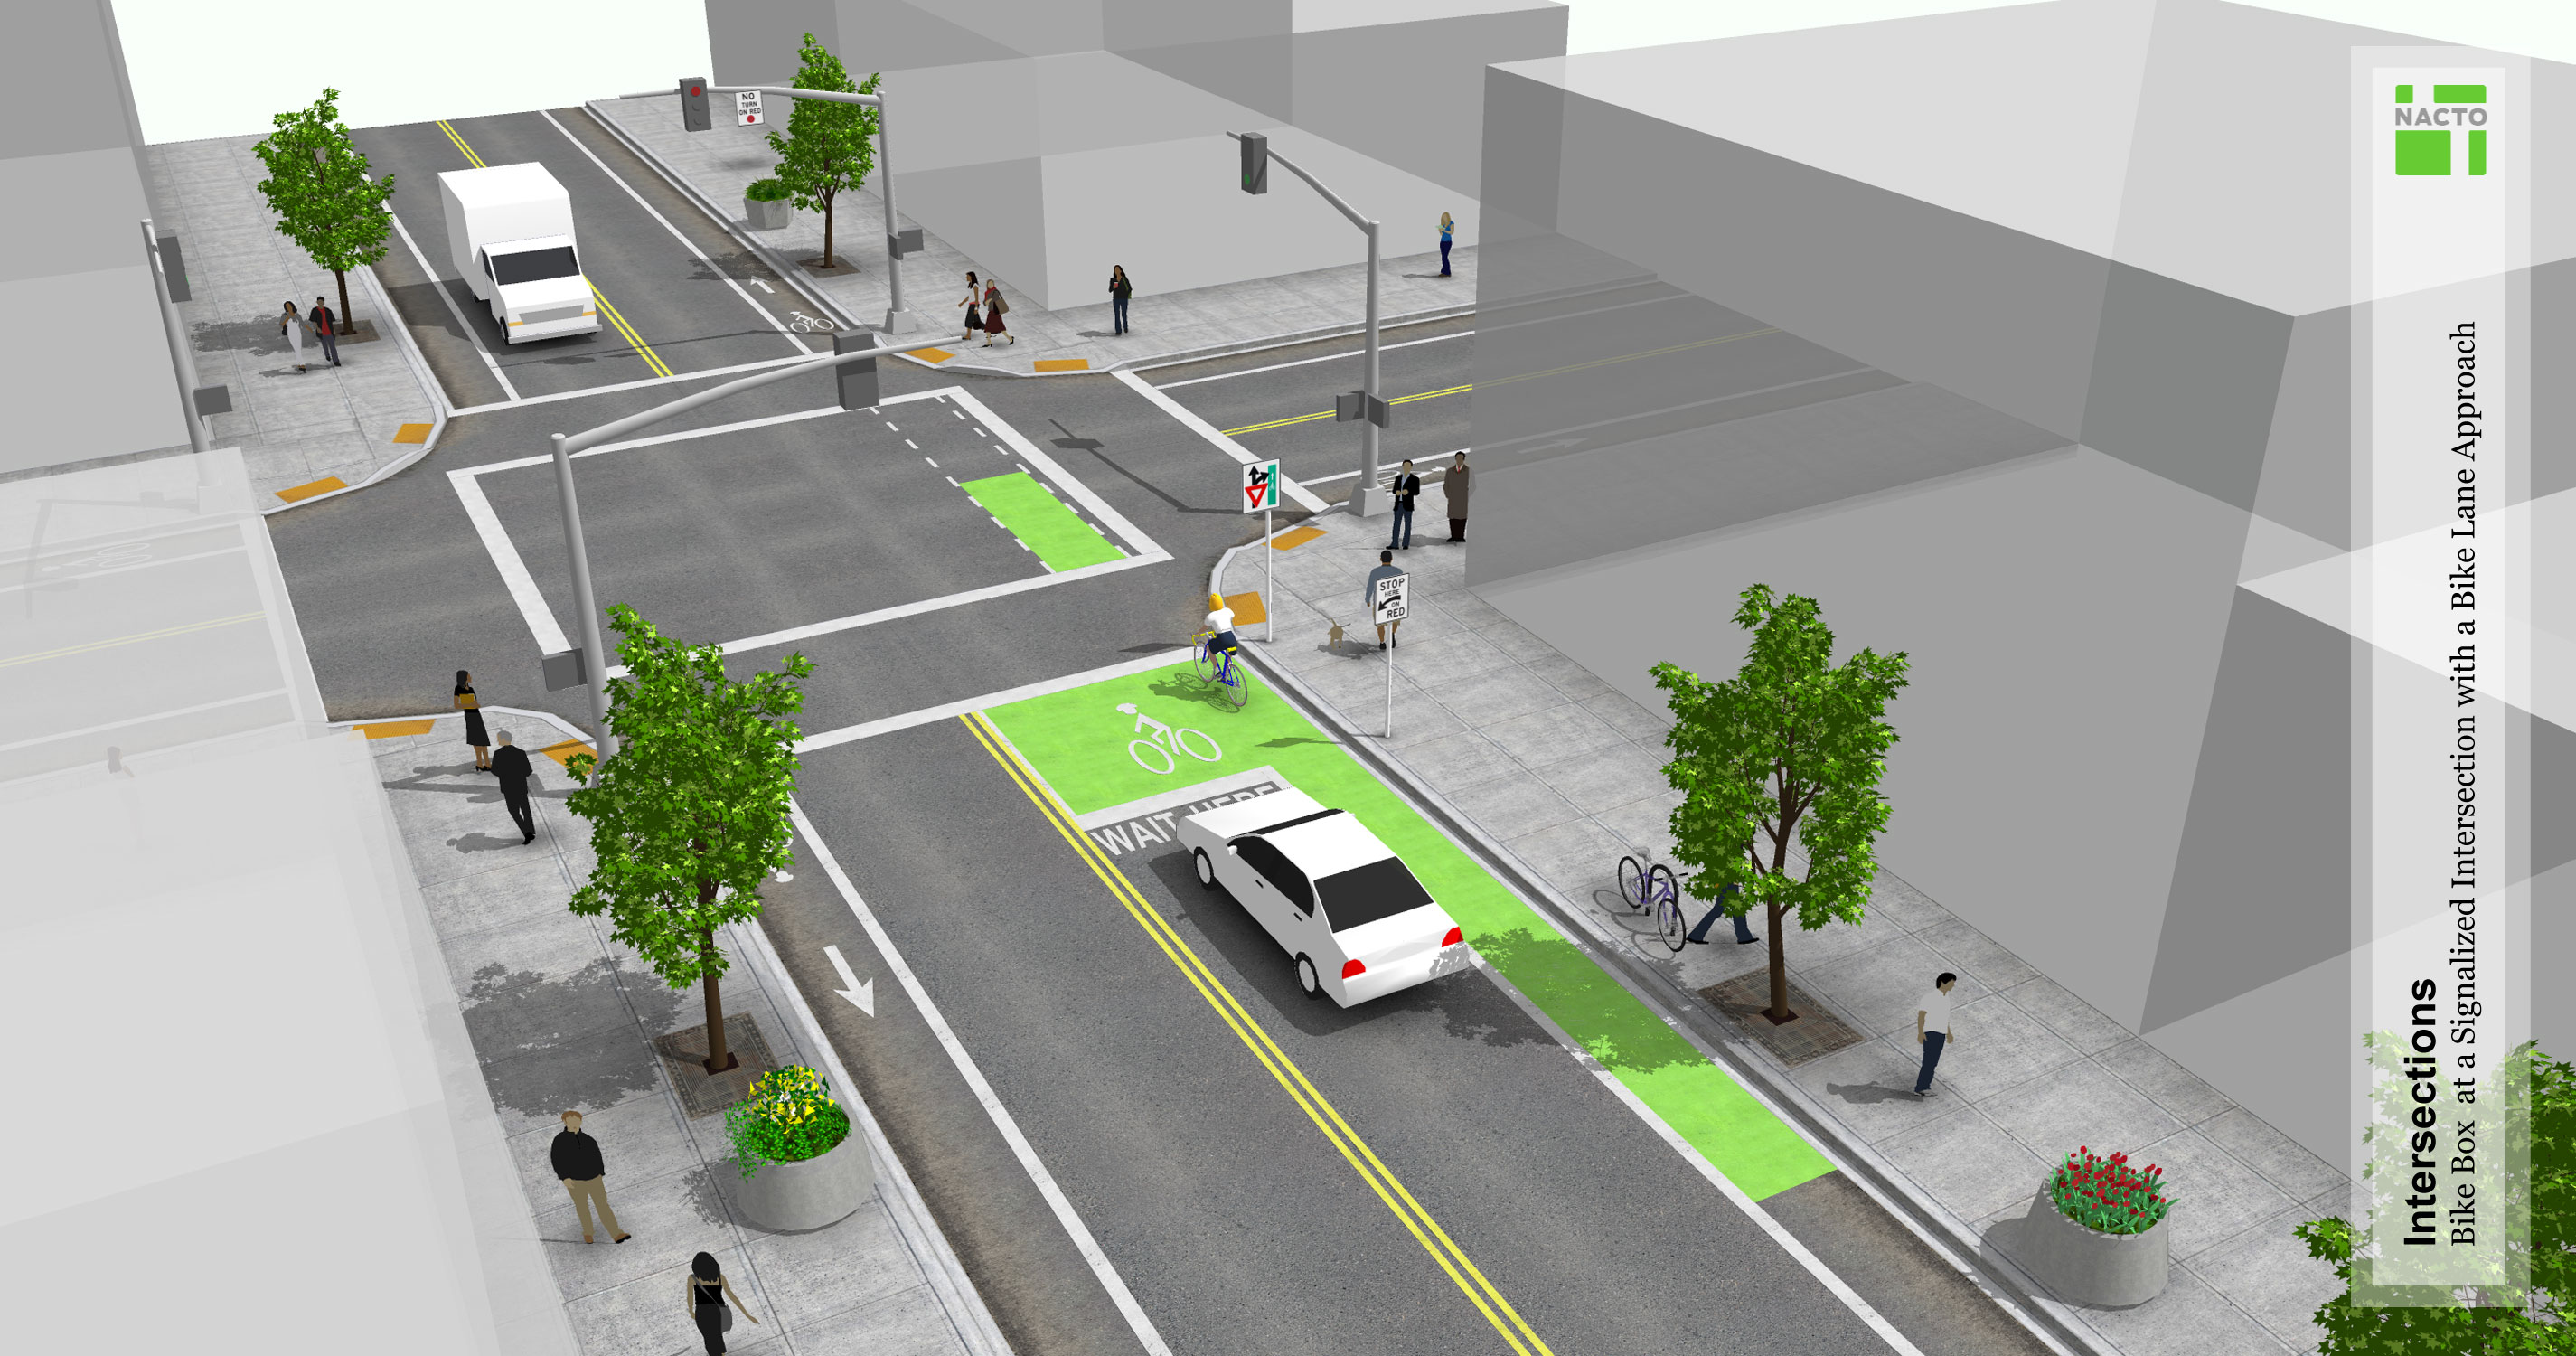 Bike boxes national association of city transportation - Traffic planning and design layoffs ...